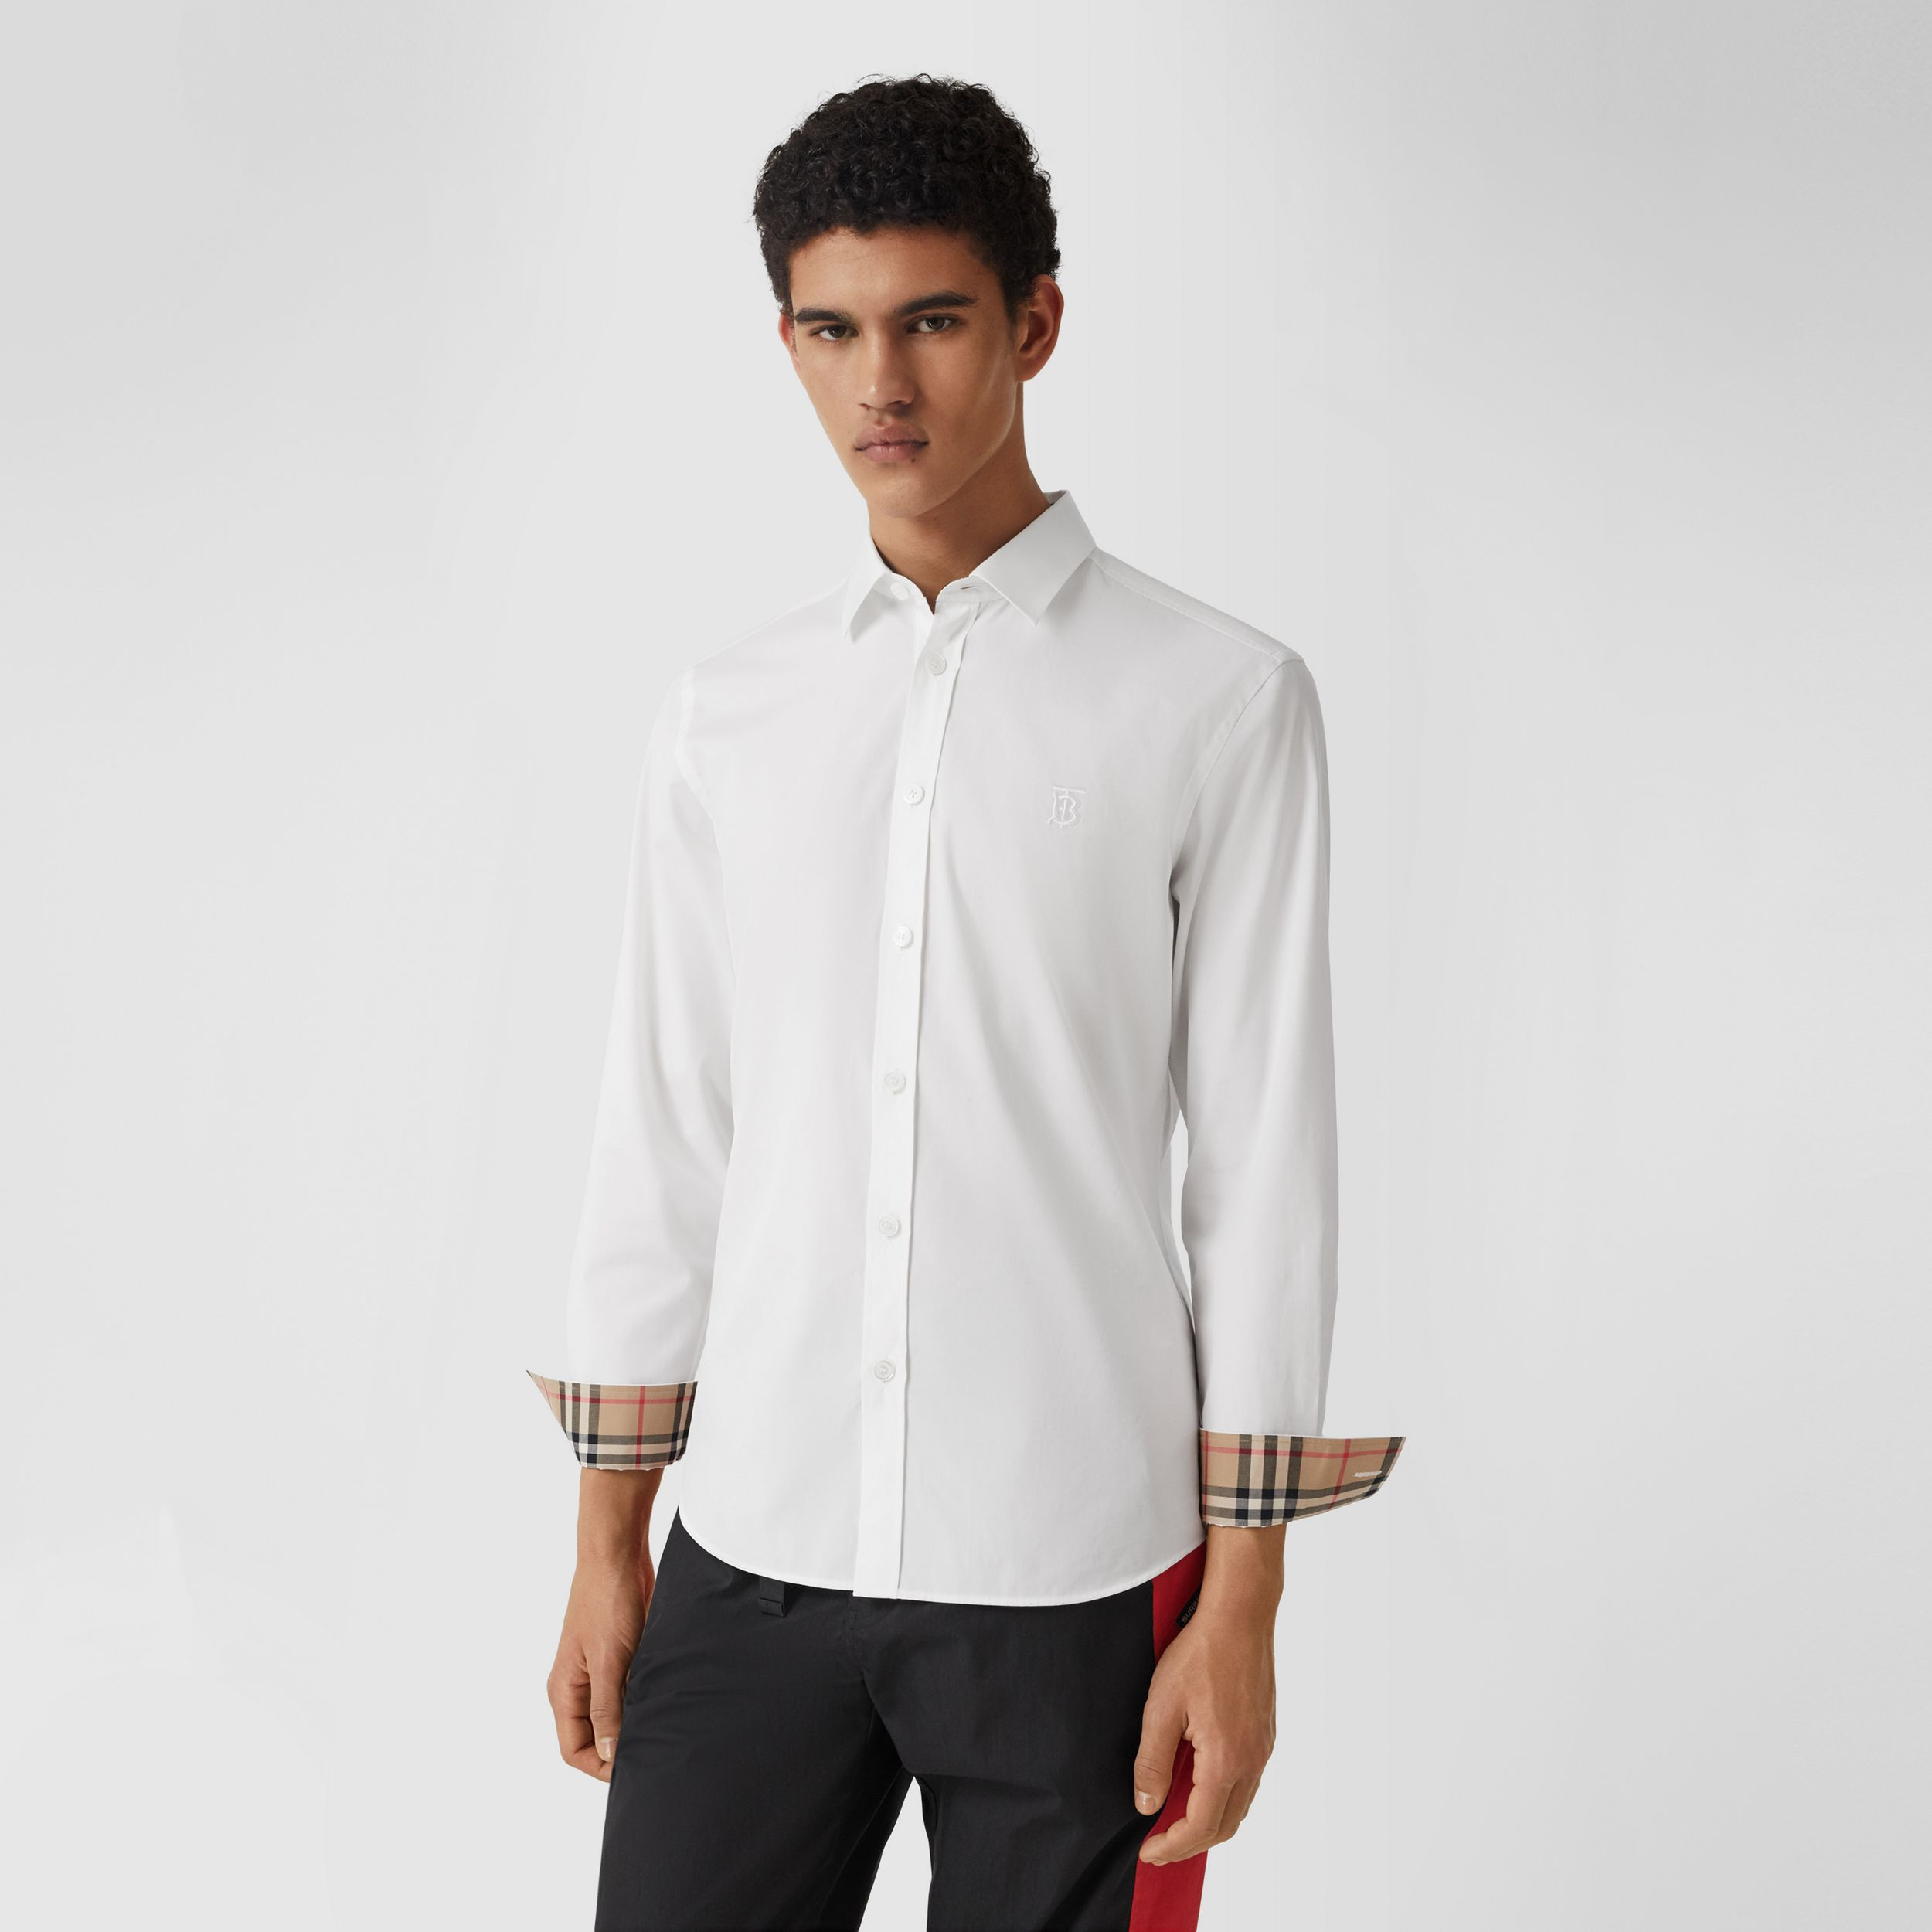 Slim Fit Monogram Motif Stretch Cotton Poplin Shirt in White - Men | Burberry Hong Kong S.A.R. - 1